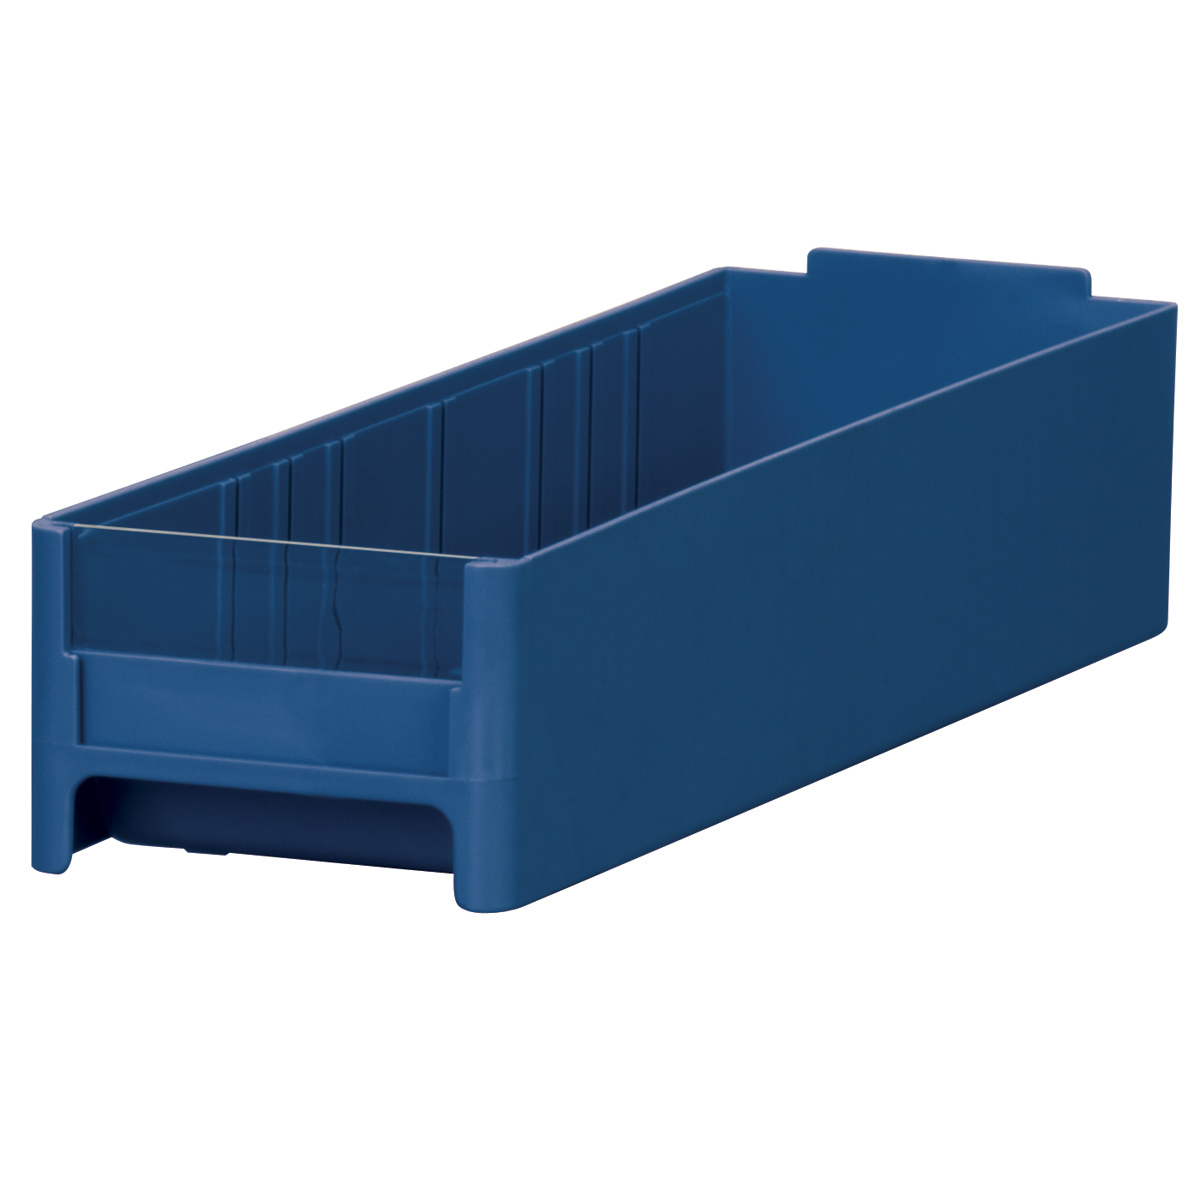 19-Series Cabinet Drawer 3-3/16 x 2-1/16 x 10-9/16, Blue.  This item sold in carton quantities of 40.